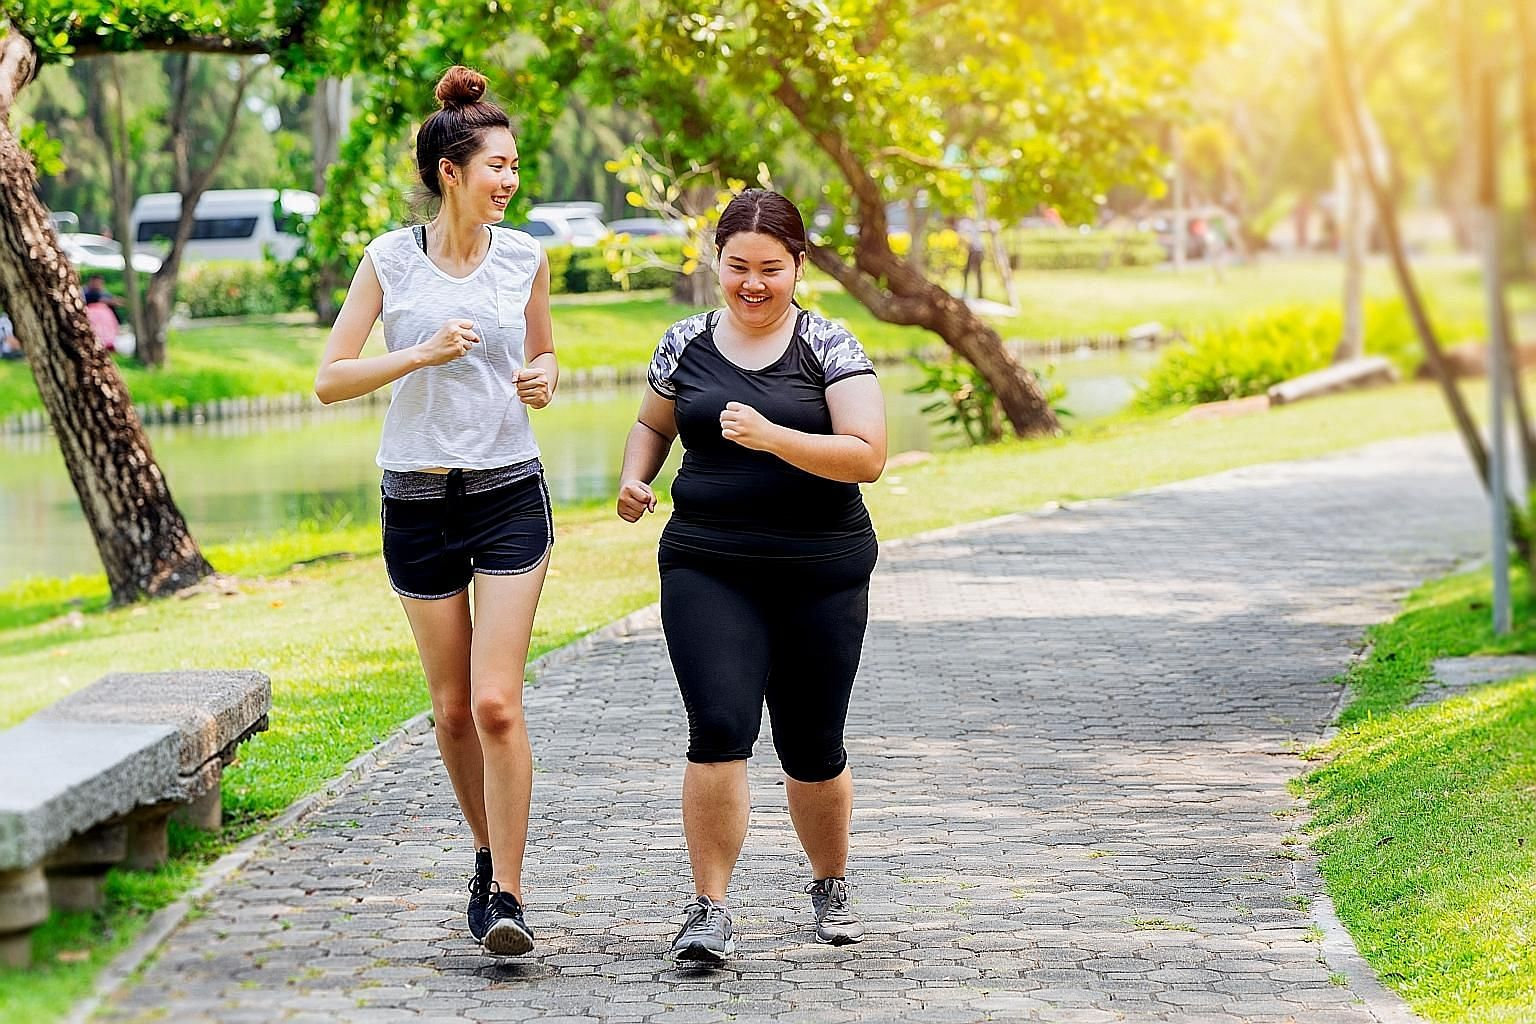 Be it for beginners or people who want to lose excess weight, low-intensity steady state would be a good way to go for anyone who is starting a fitness programme.